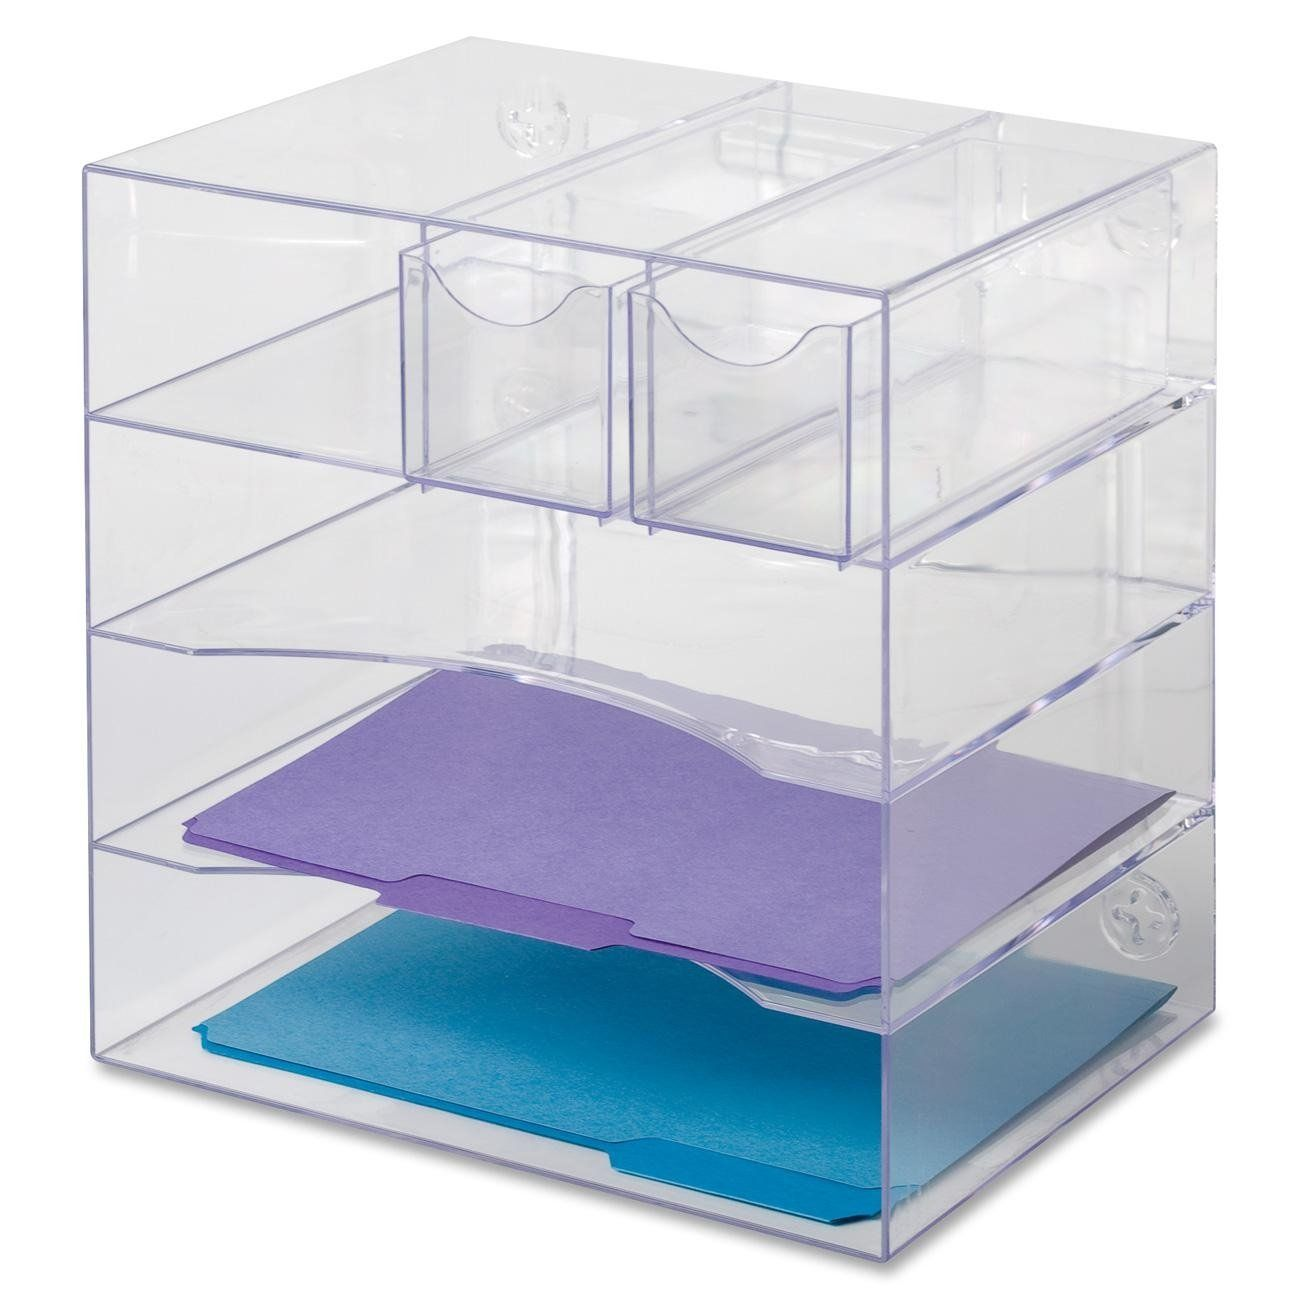 Rubbermaid 48 Optimizers multifunctional four-way organizer